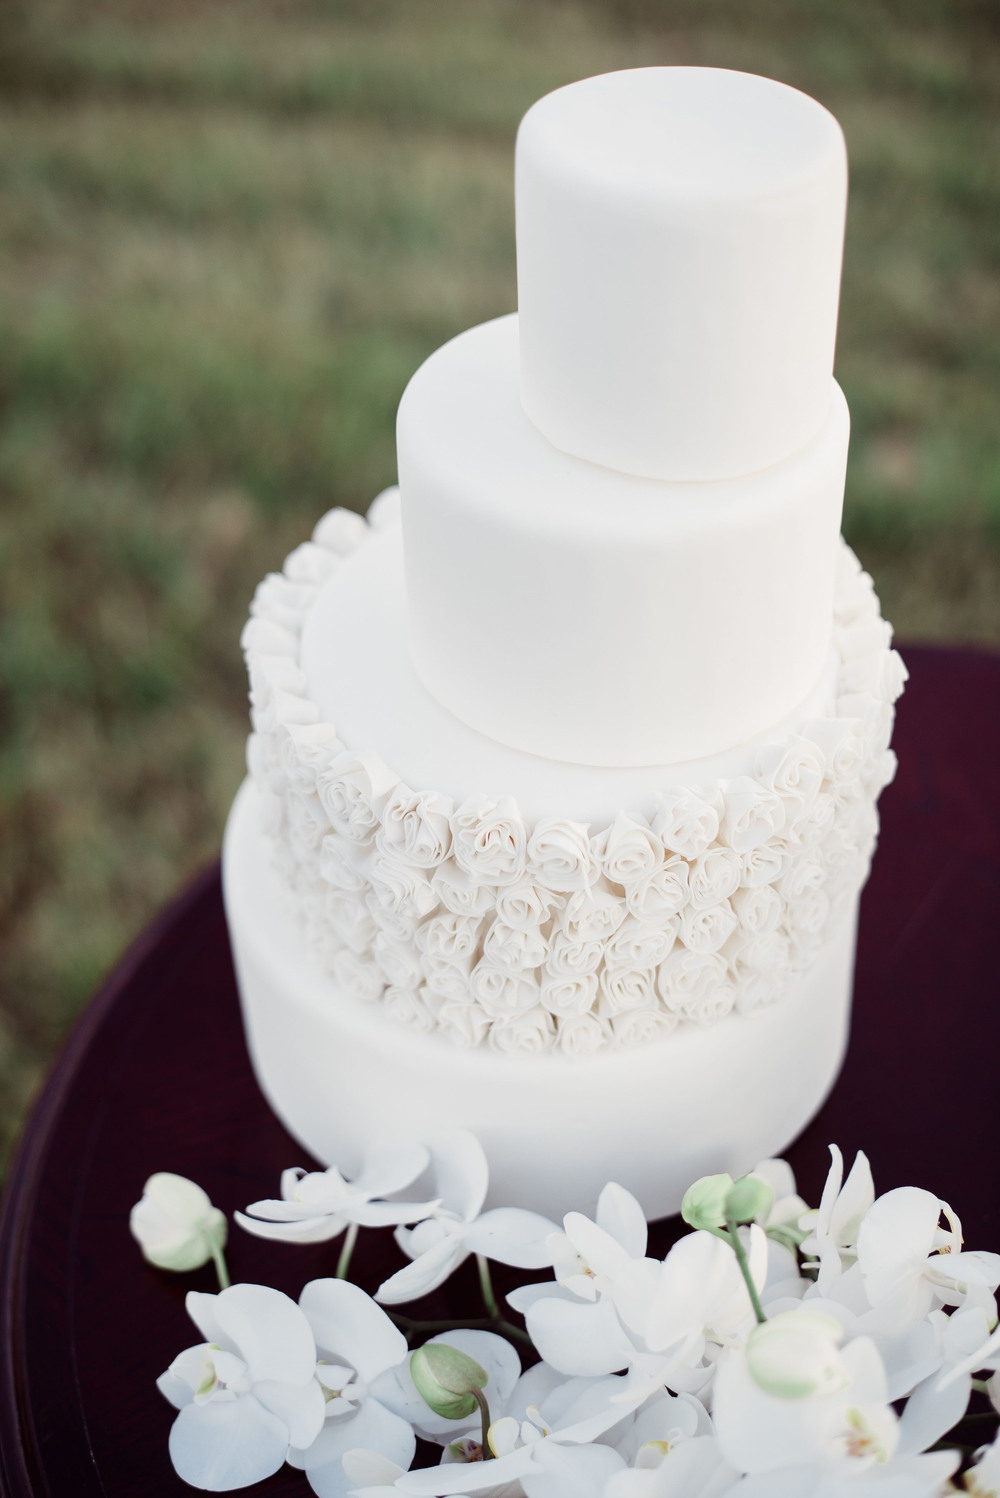 niagara-wedding-cakes-sweet-celebrations-custom-cakes-014.JPG